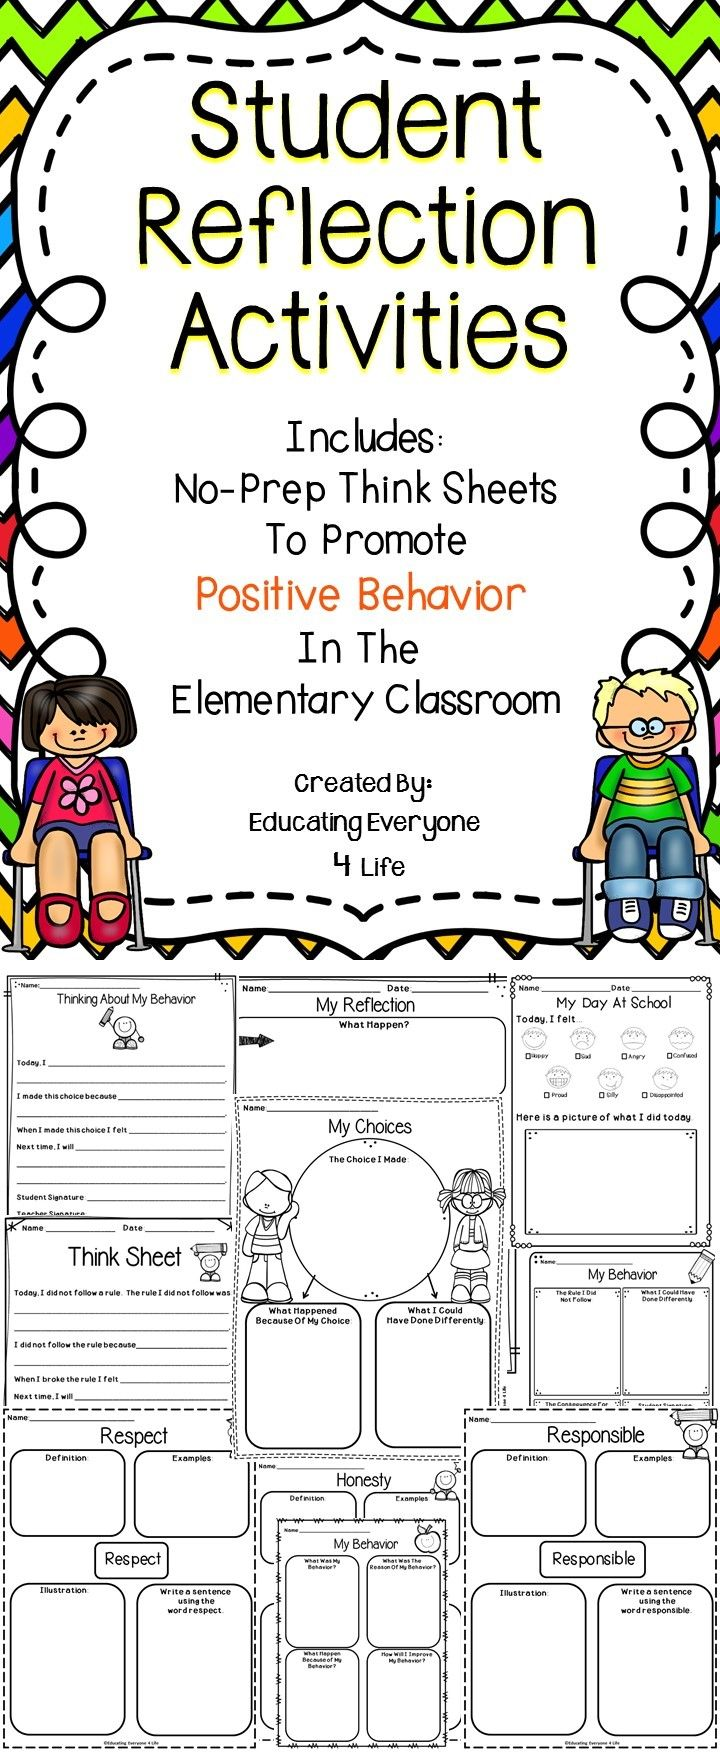 Behavior Reflection Sheets For The Classroom - These think sheets are a great way to increase positive behaviors in the educational setting.